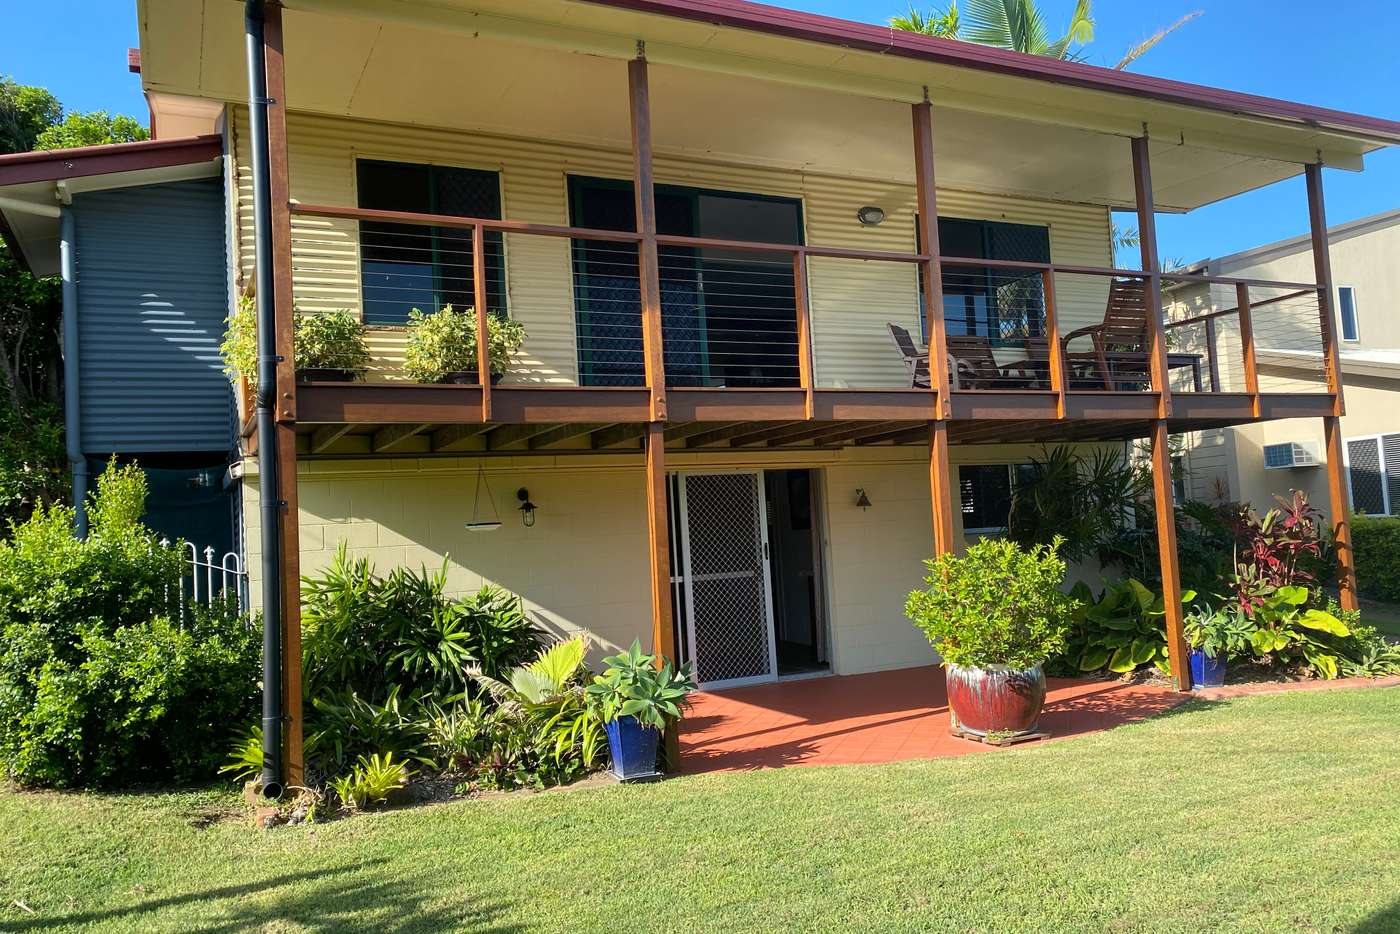 Main view of Homely house listing, 27 Denman Avenue, Shoal Point QLD 4750